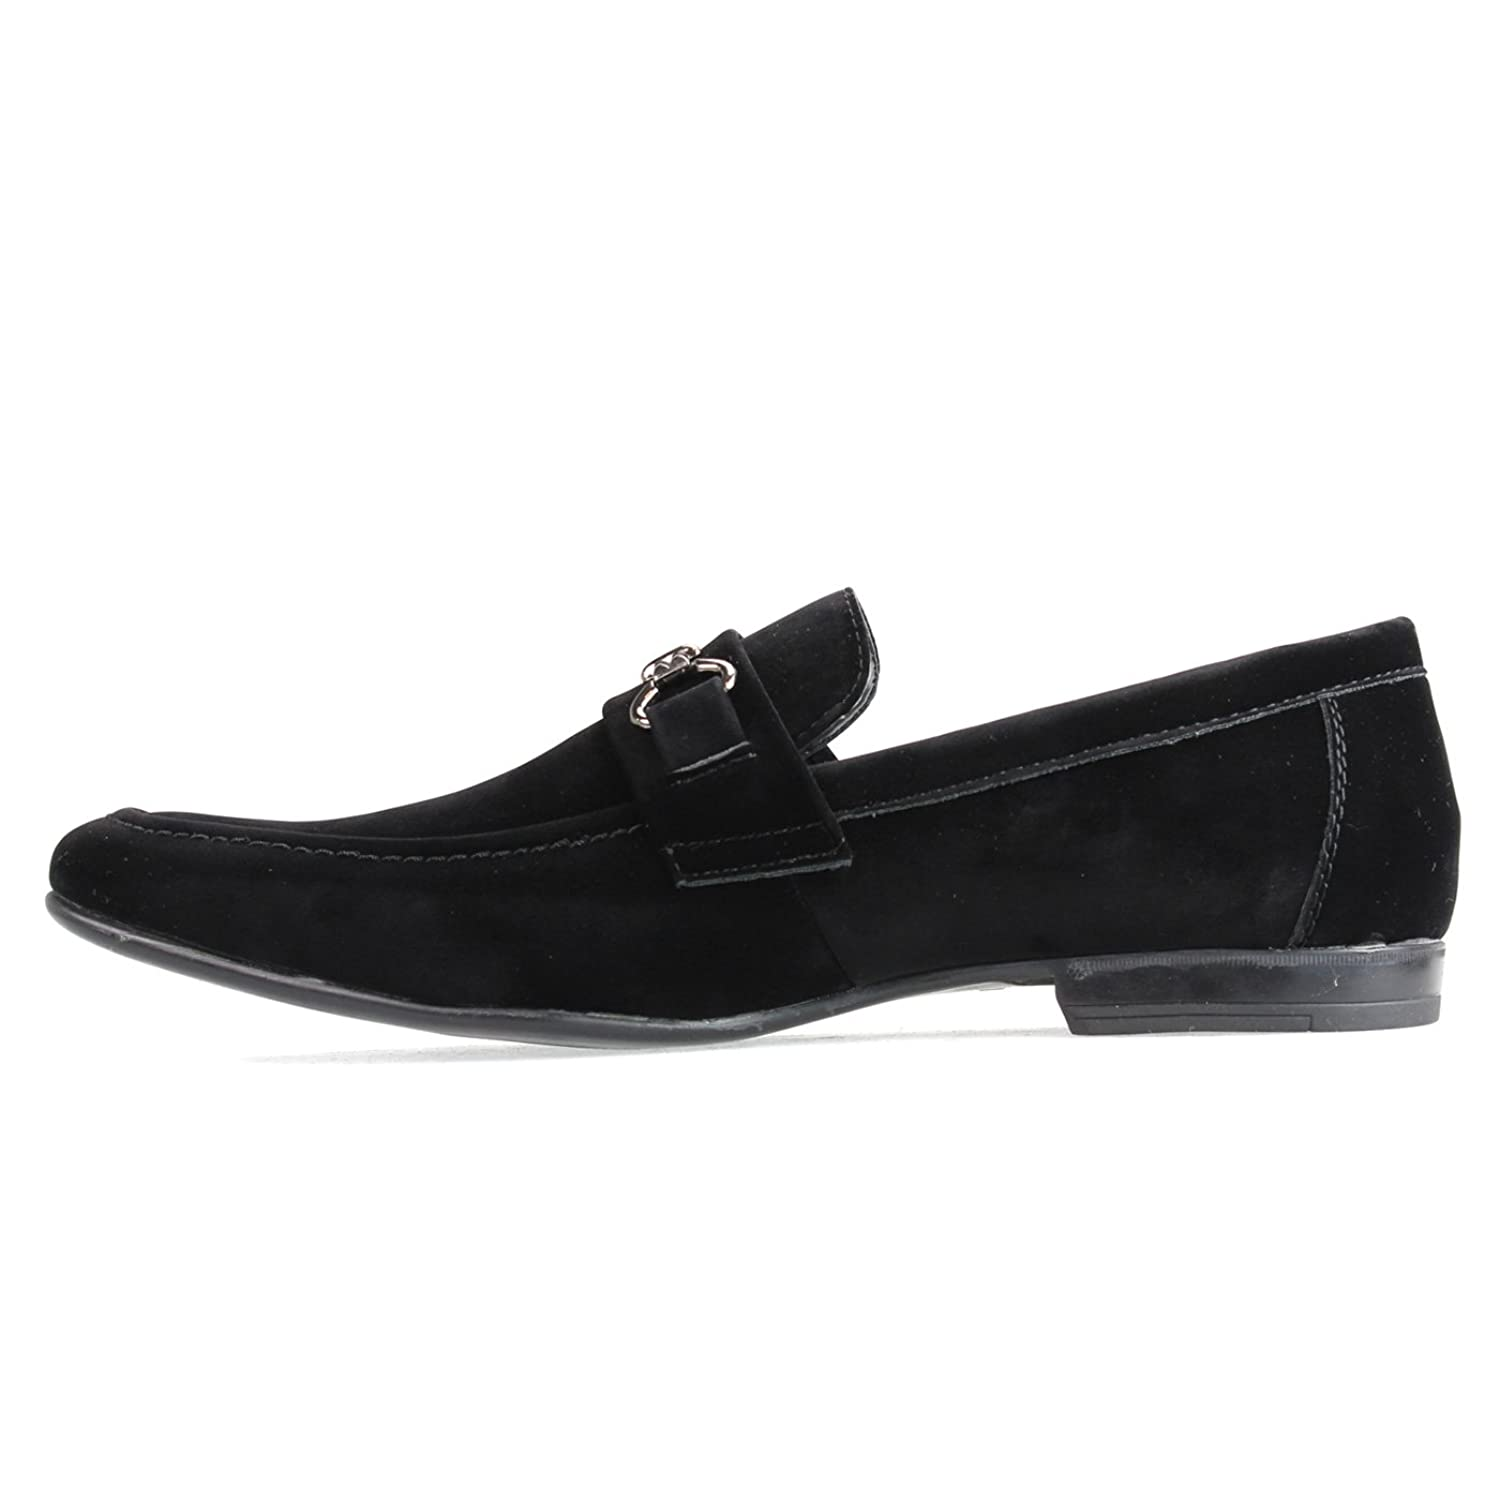 An By Lucius Mens Casual Shoes Driving Bit D Island Comfort Loafers Suede Black Original Boat Shoe Opera Slip On Moccasin Training Flat Low Espadrille